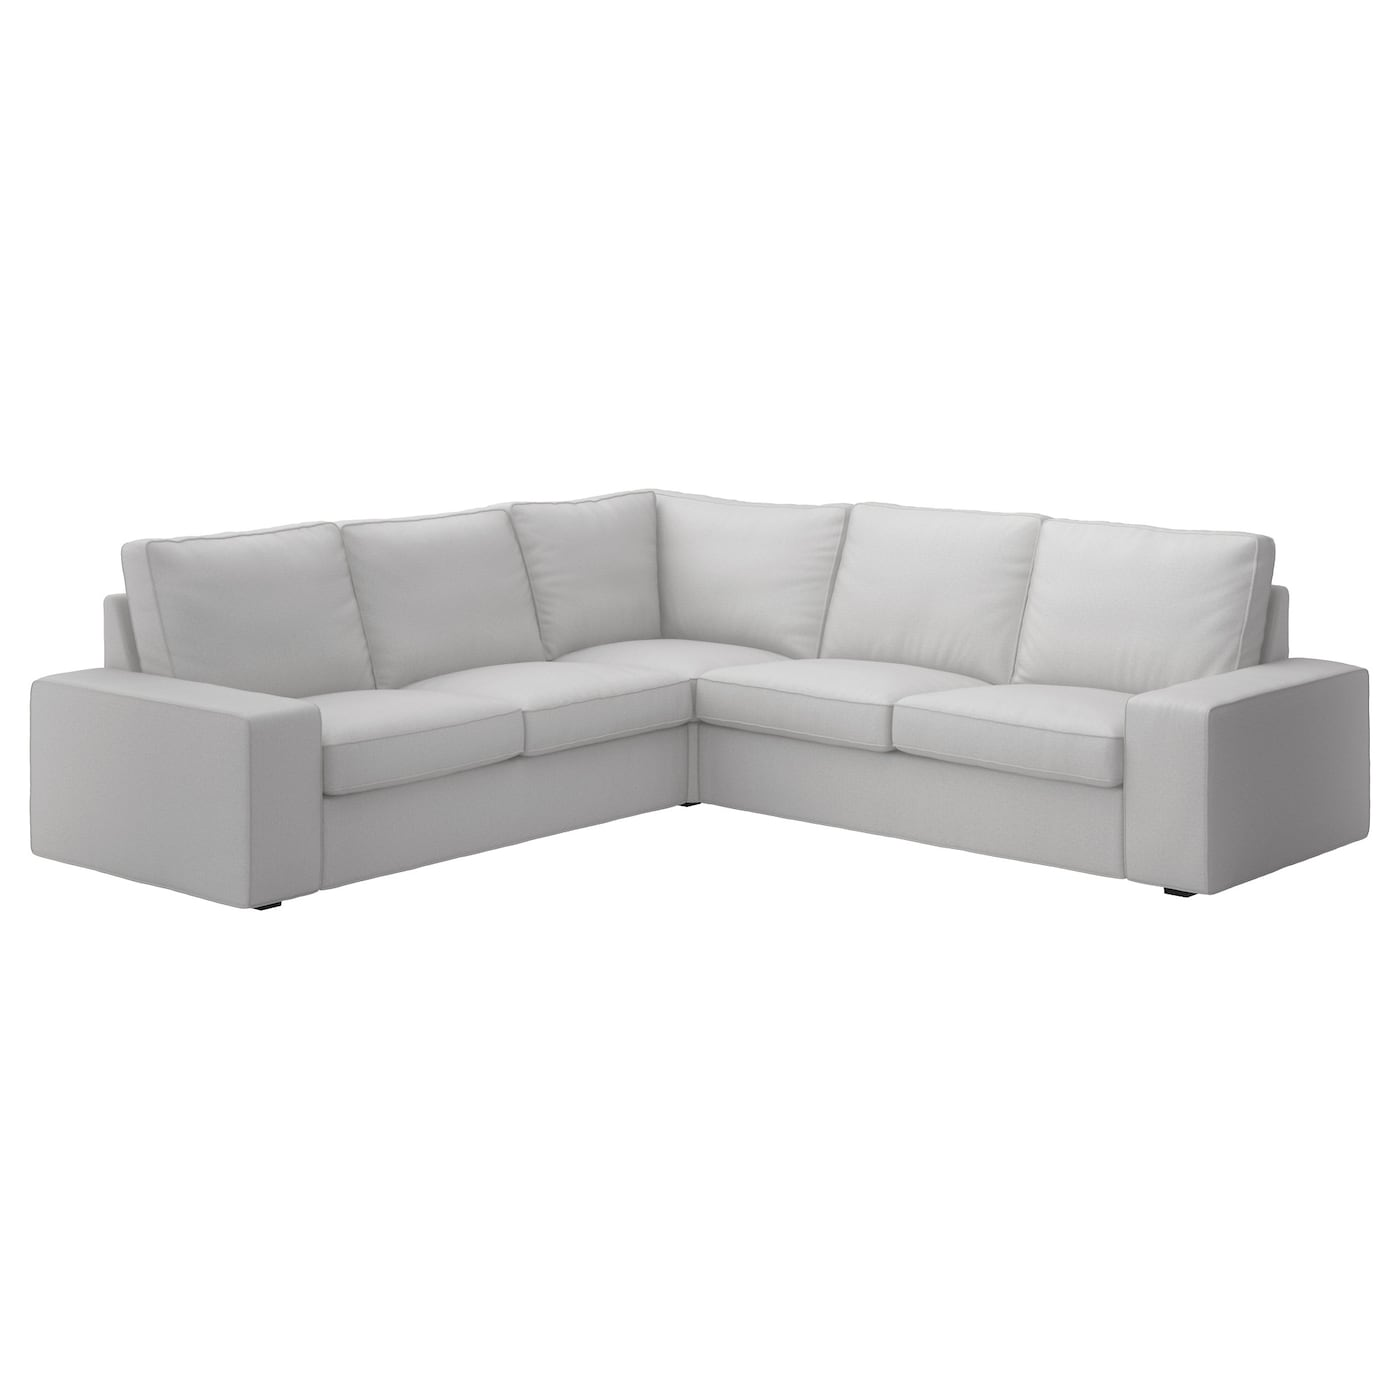 2er sofa grau great muuto connect sofa sitzer with 2er sofa grau destiny loungesofa harper. Black Bedroom Furniture Sets. Home Design Ideas